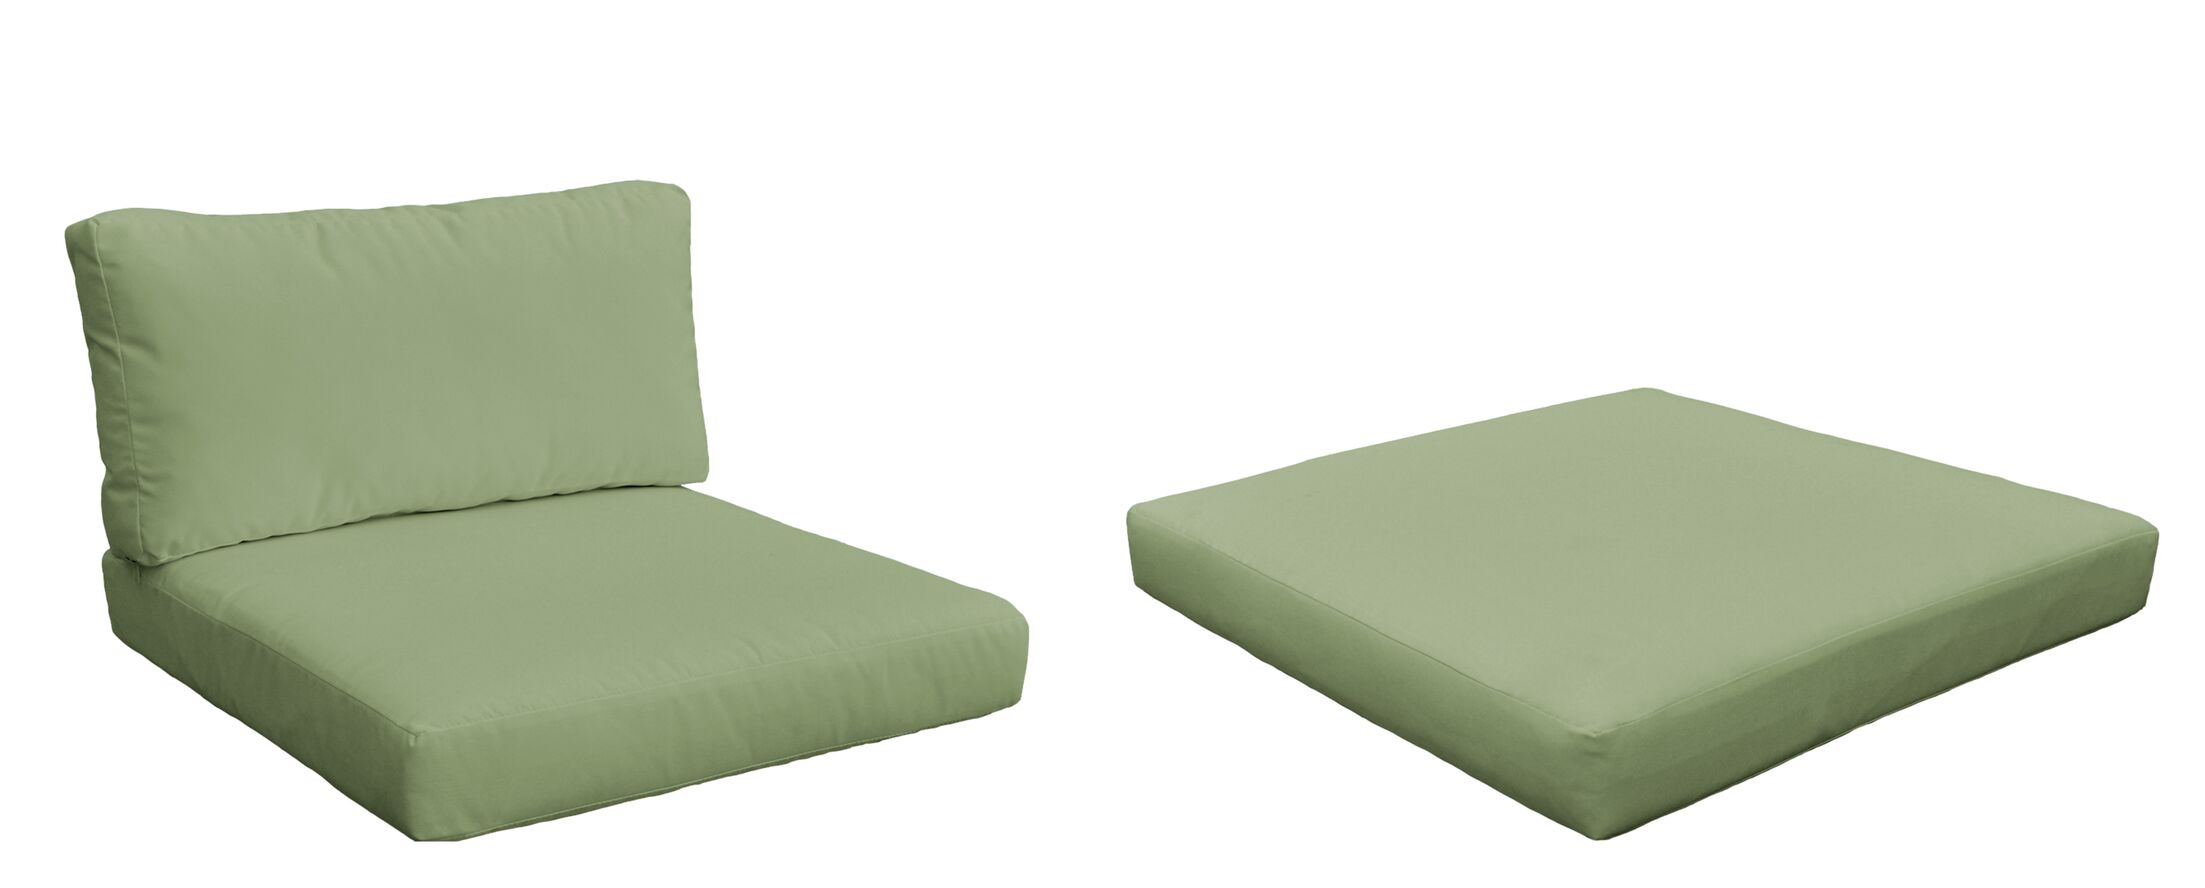 Monaco Outdoor 6 Piece Lounge Chair Cushion Set Fabric: Cilantro